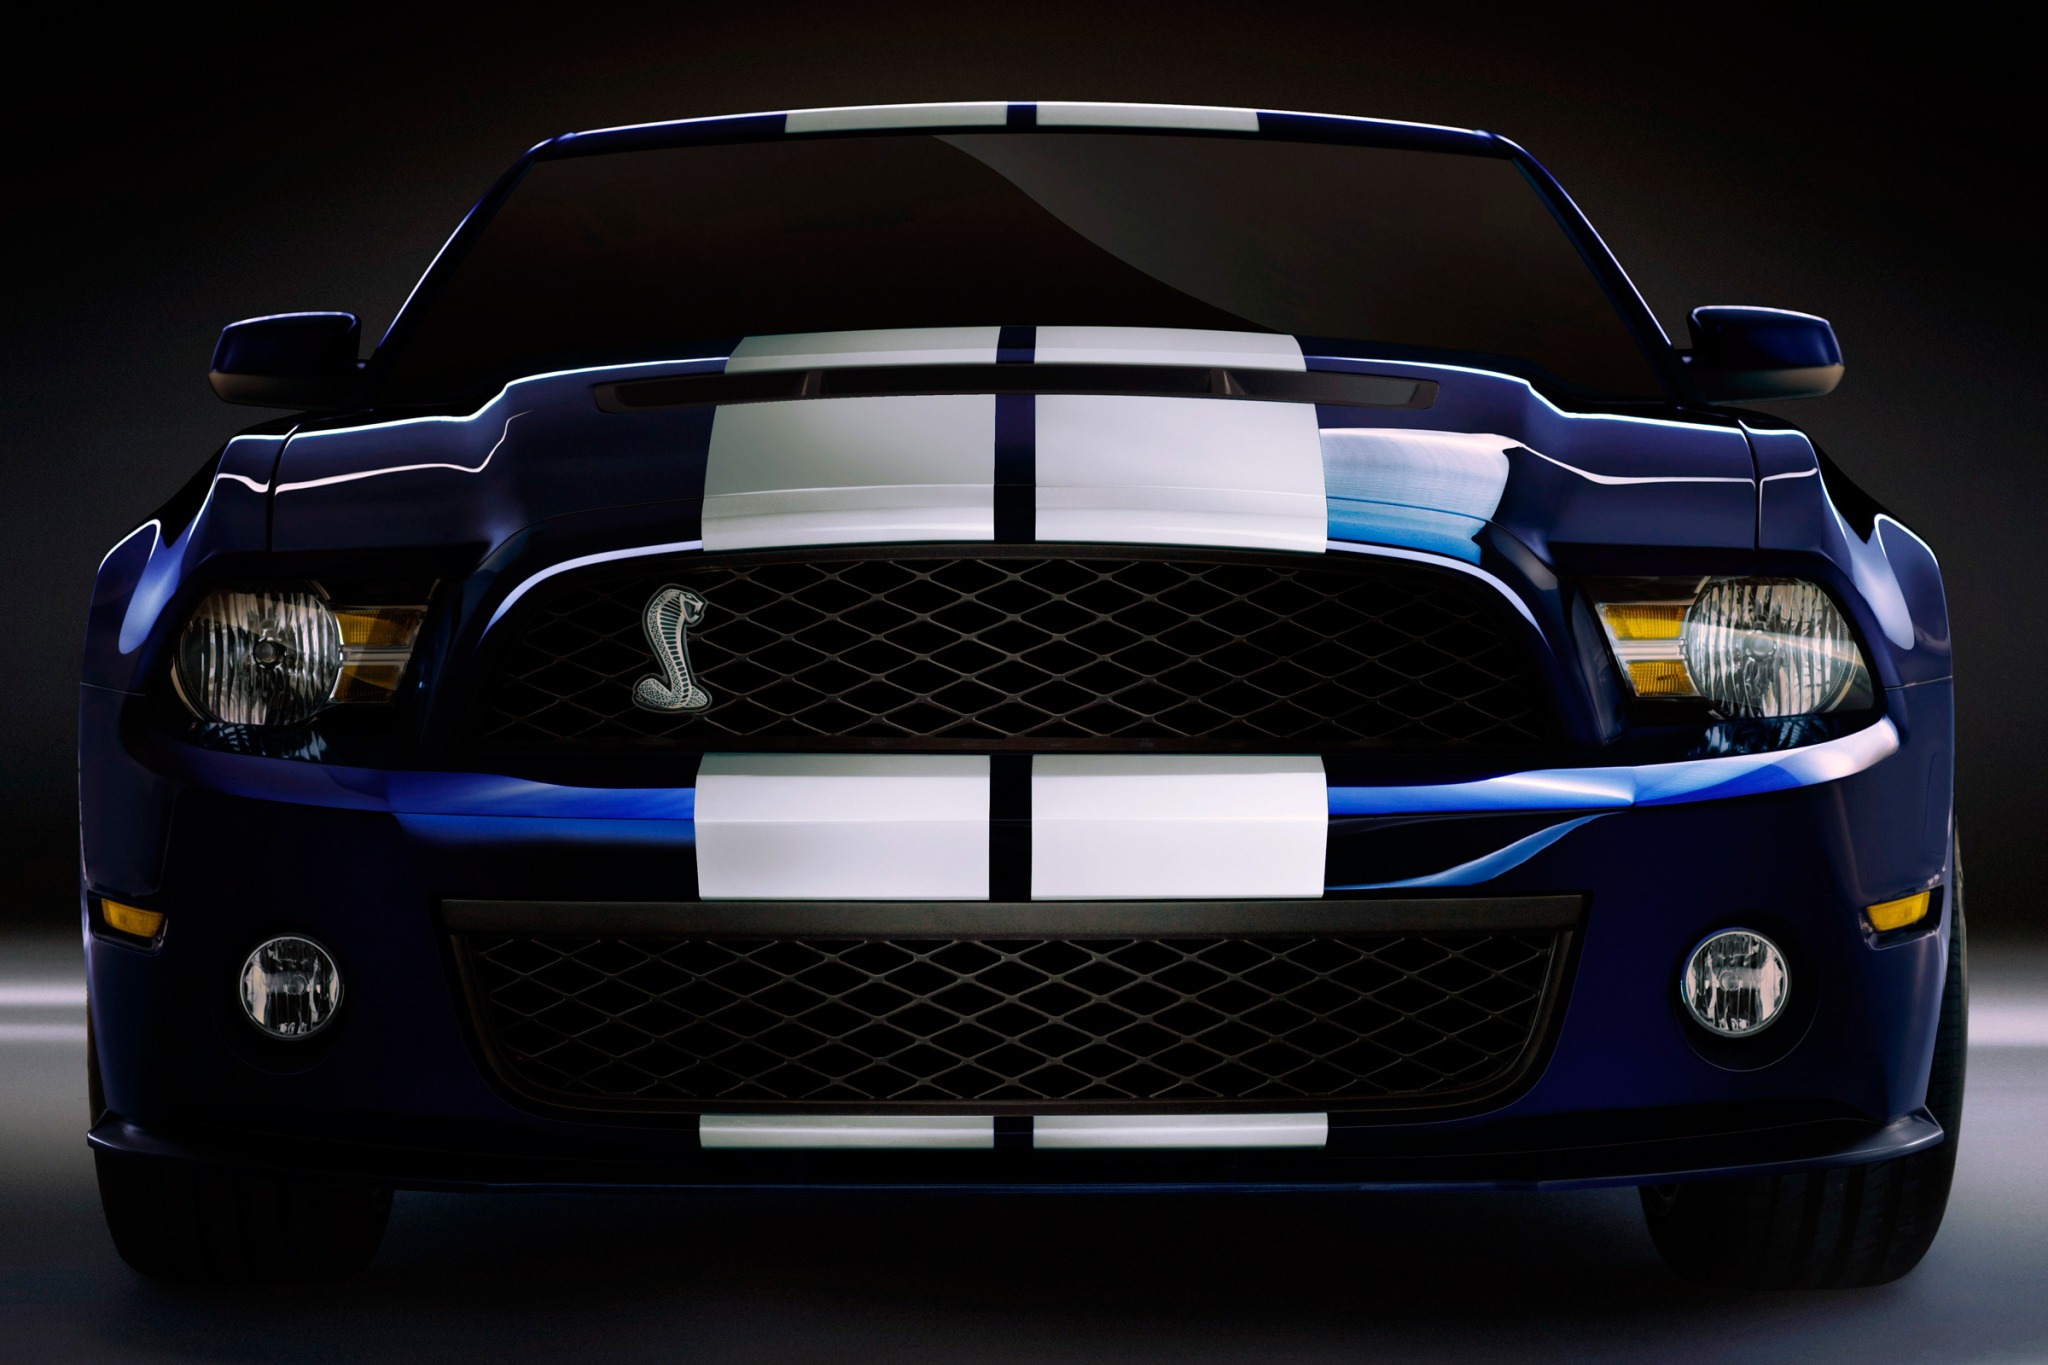 2010 Ford Shelby GT500 Ba exterior #7